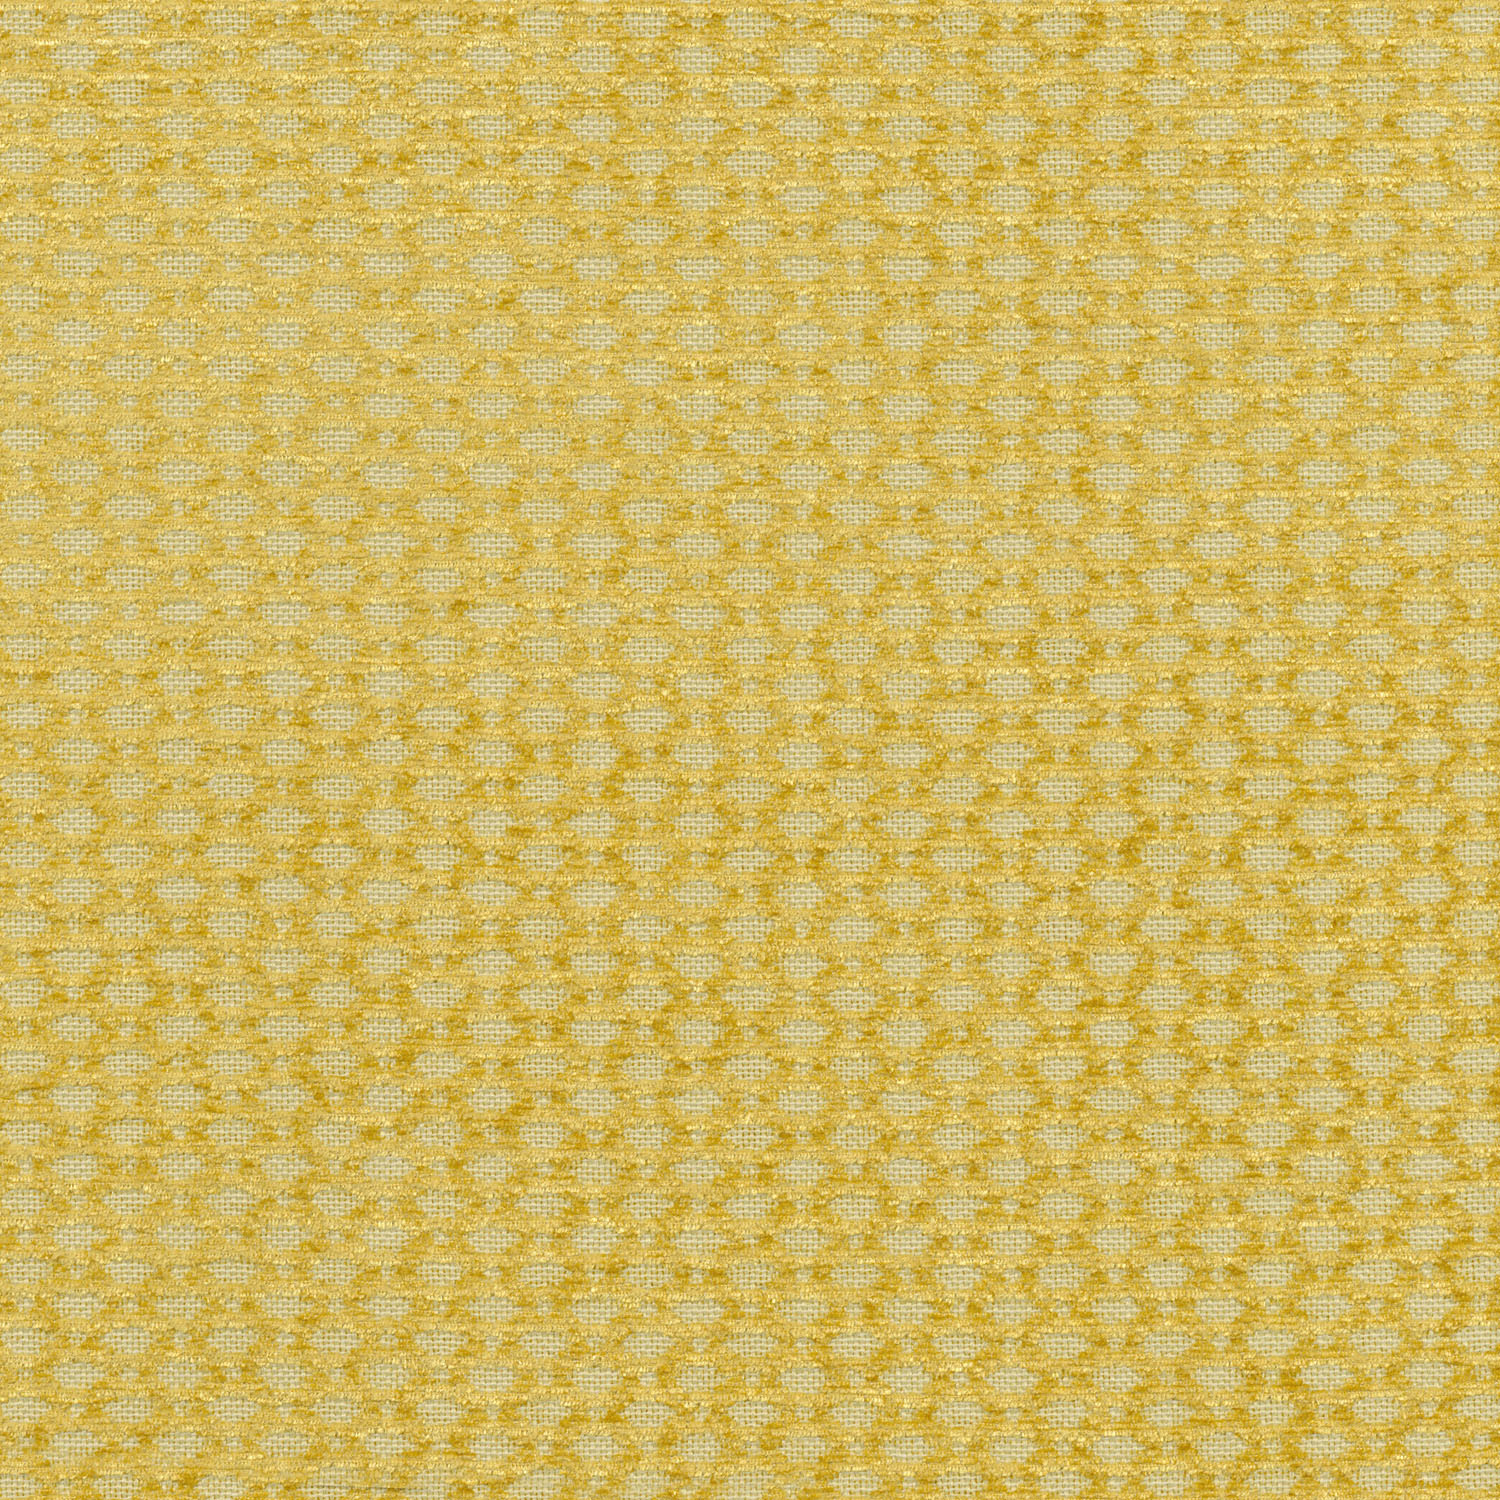 Home Decor 8\u0022x8\u0022 Fabric Swatch-IMAN Eden Mica